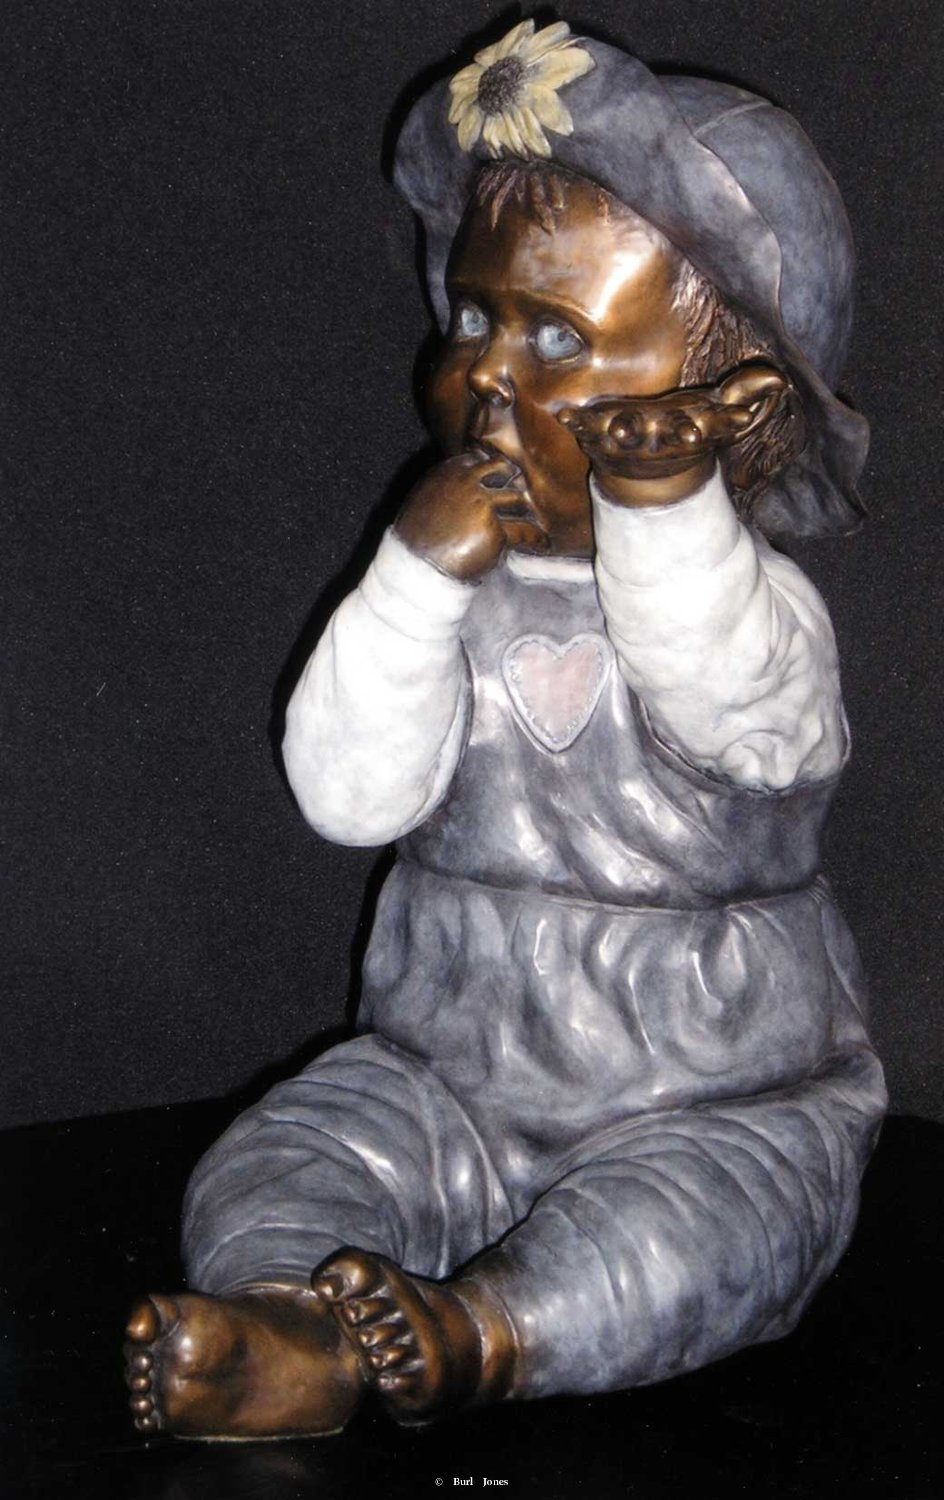 """Finger Food""<br>Life Size Baby - Edition 30 ""Finger Food"" - Figurative Sculpture  People Sculpture"